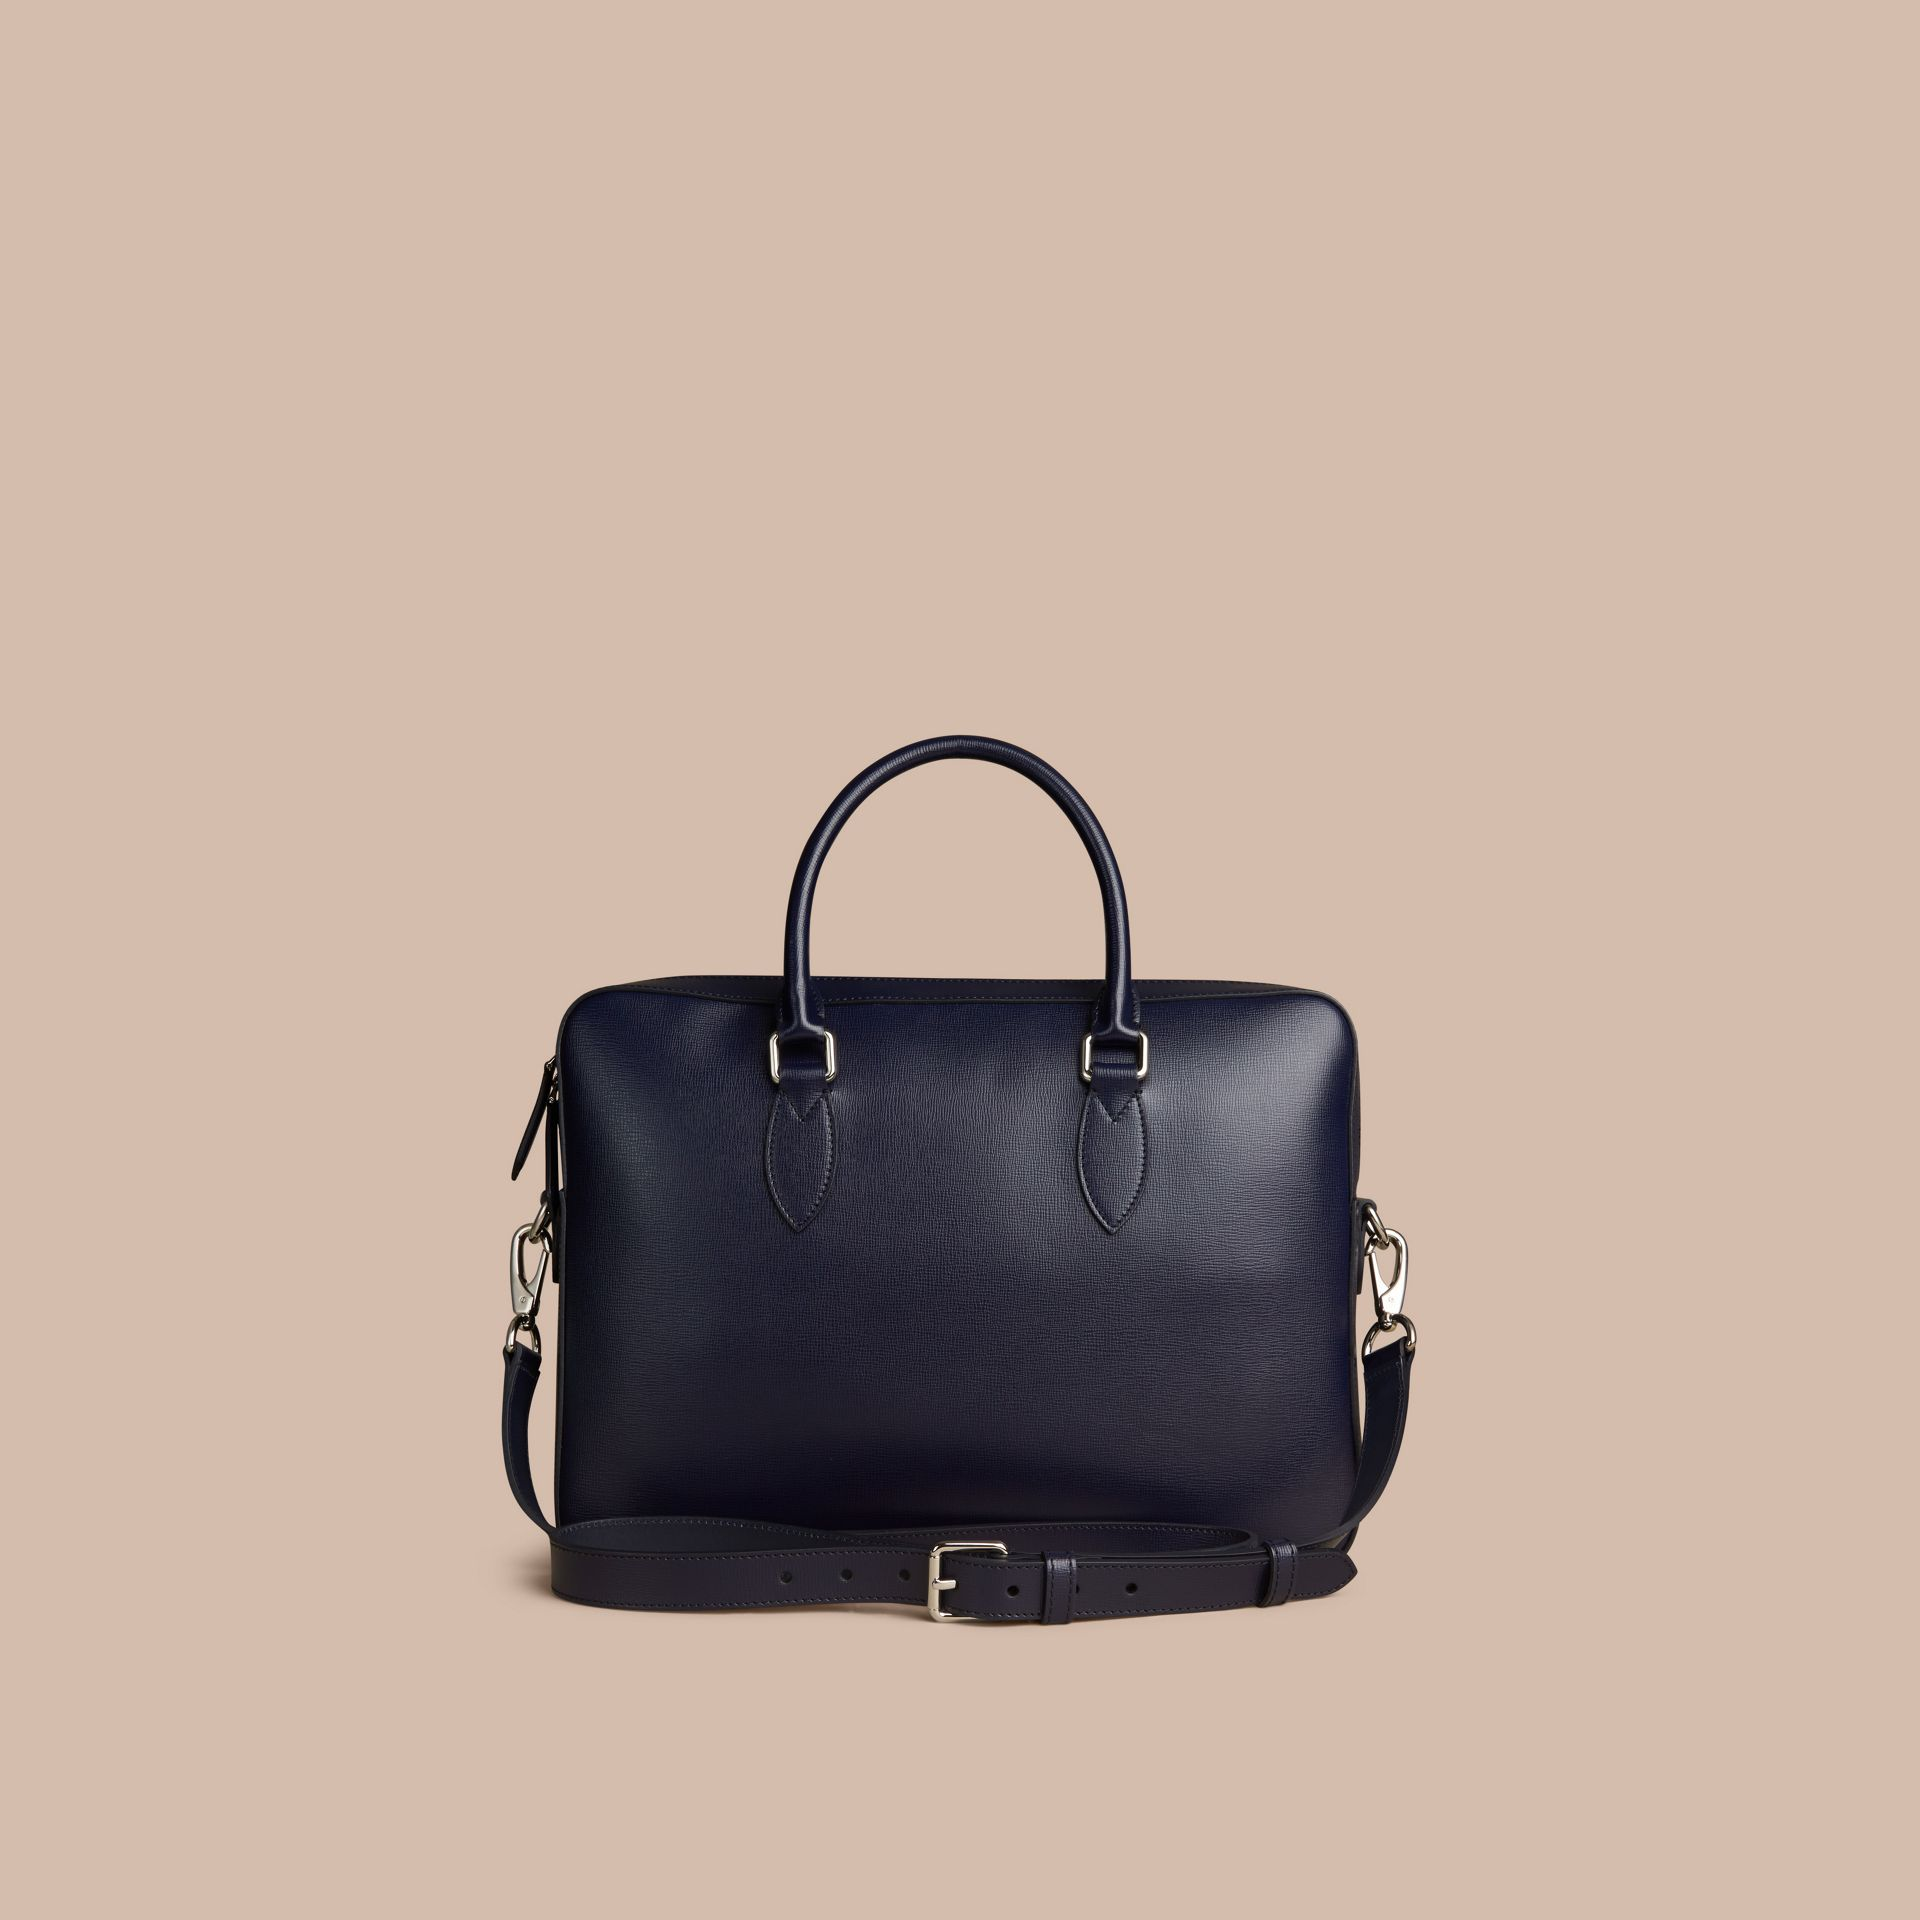 Borsa portadocumenti media in pelle London Navy Scuro - immagine della galleria 4